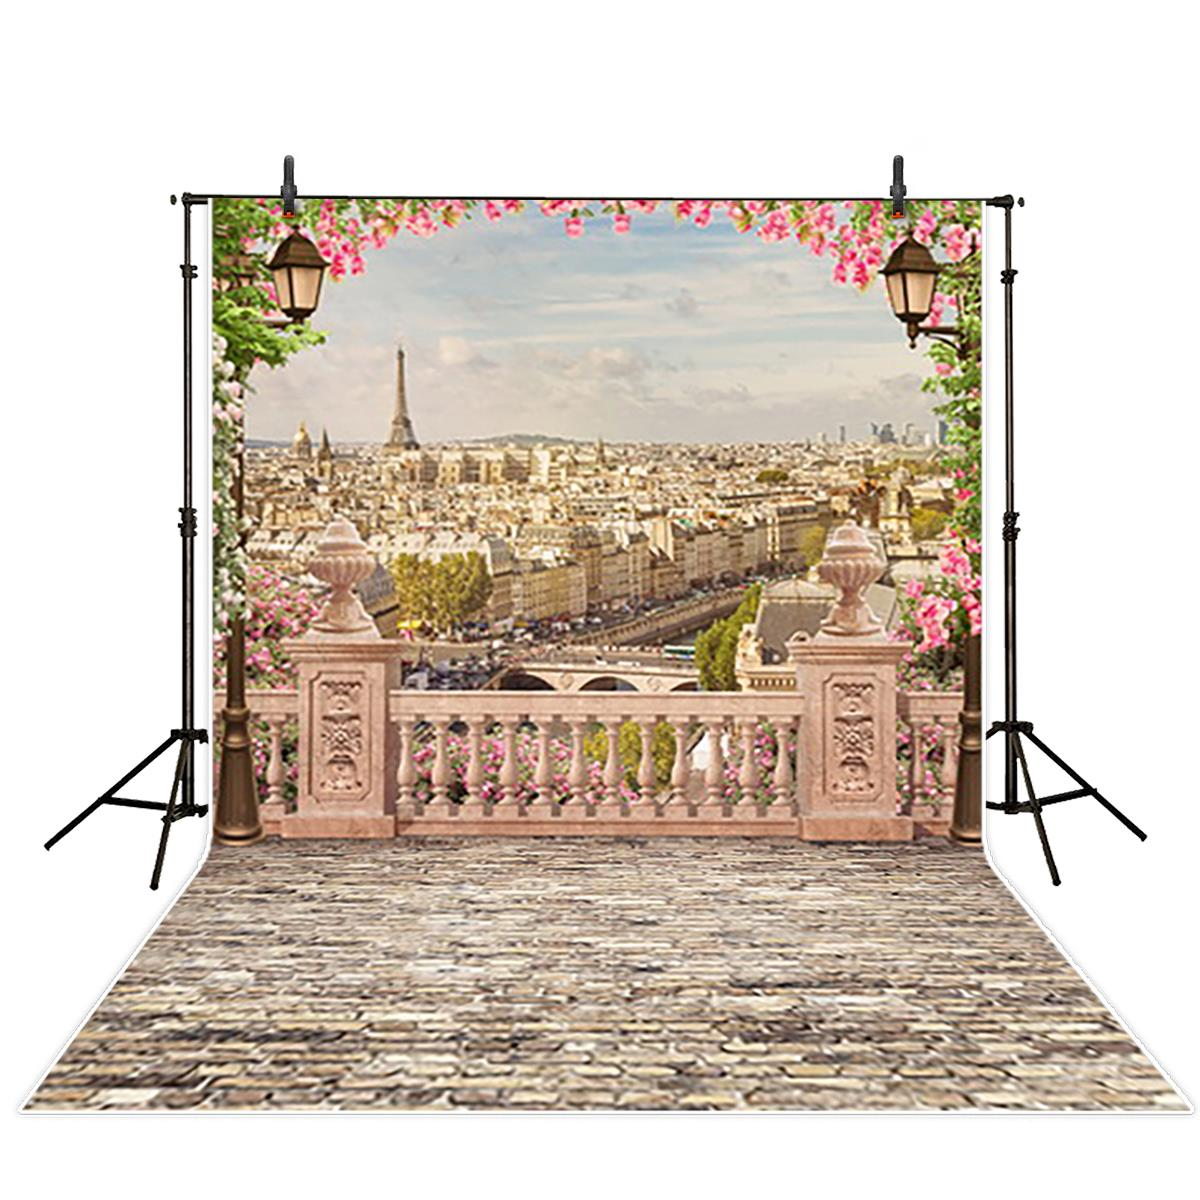 Paris Eiffel Tower City Landscape photo backdrop Vinyl cloth High quality Computer print party Photography Backgrounds